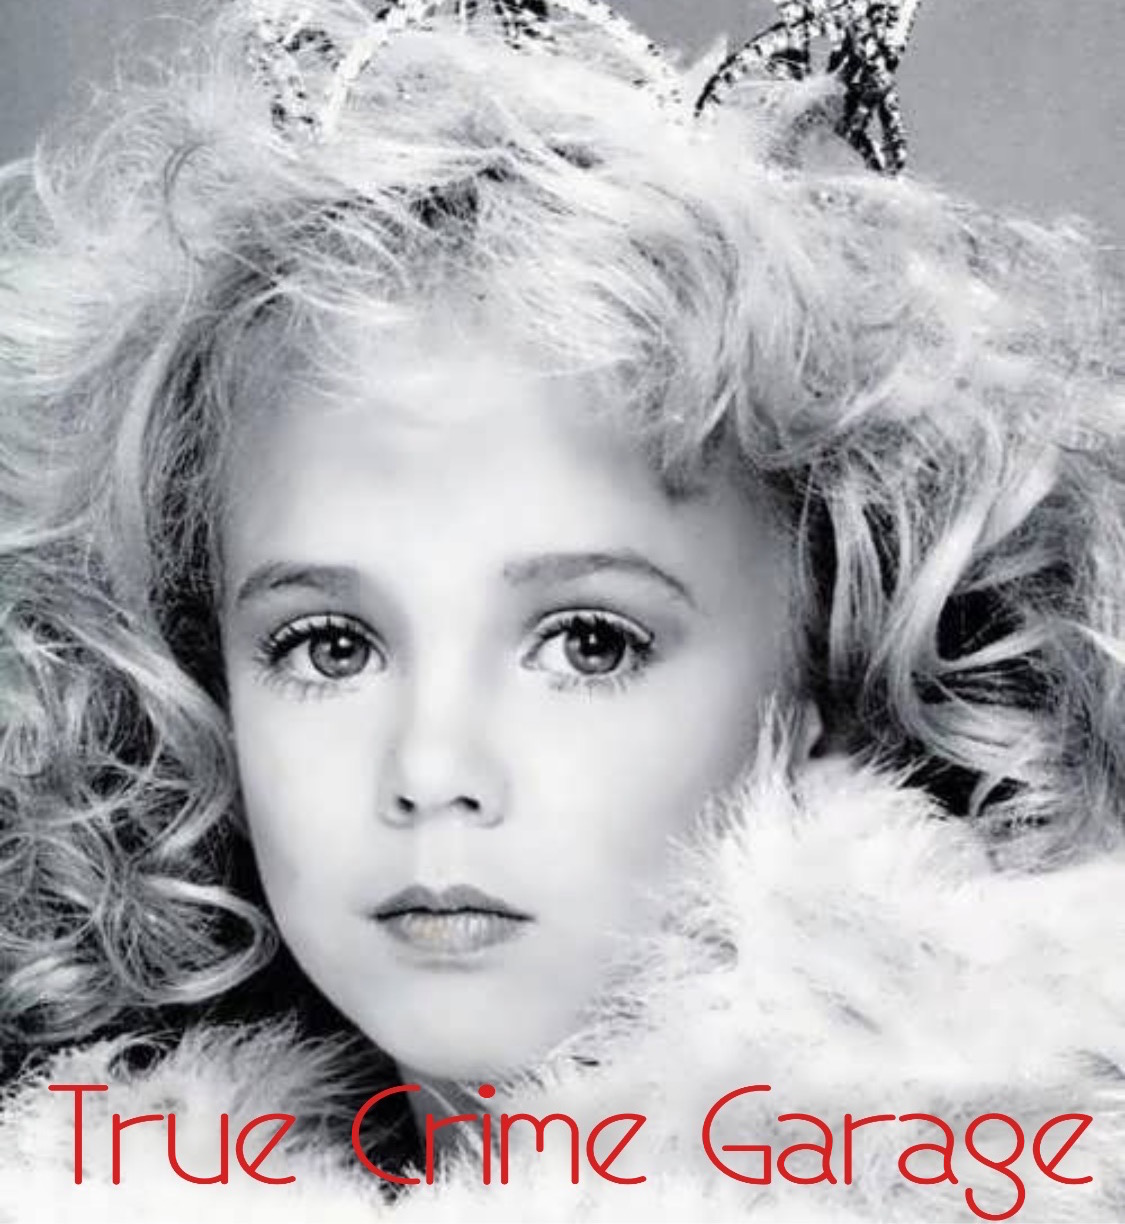 JonBenet Ramsey ////// The Family